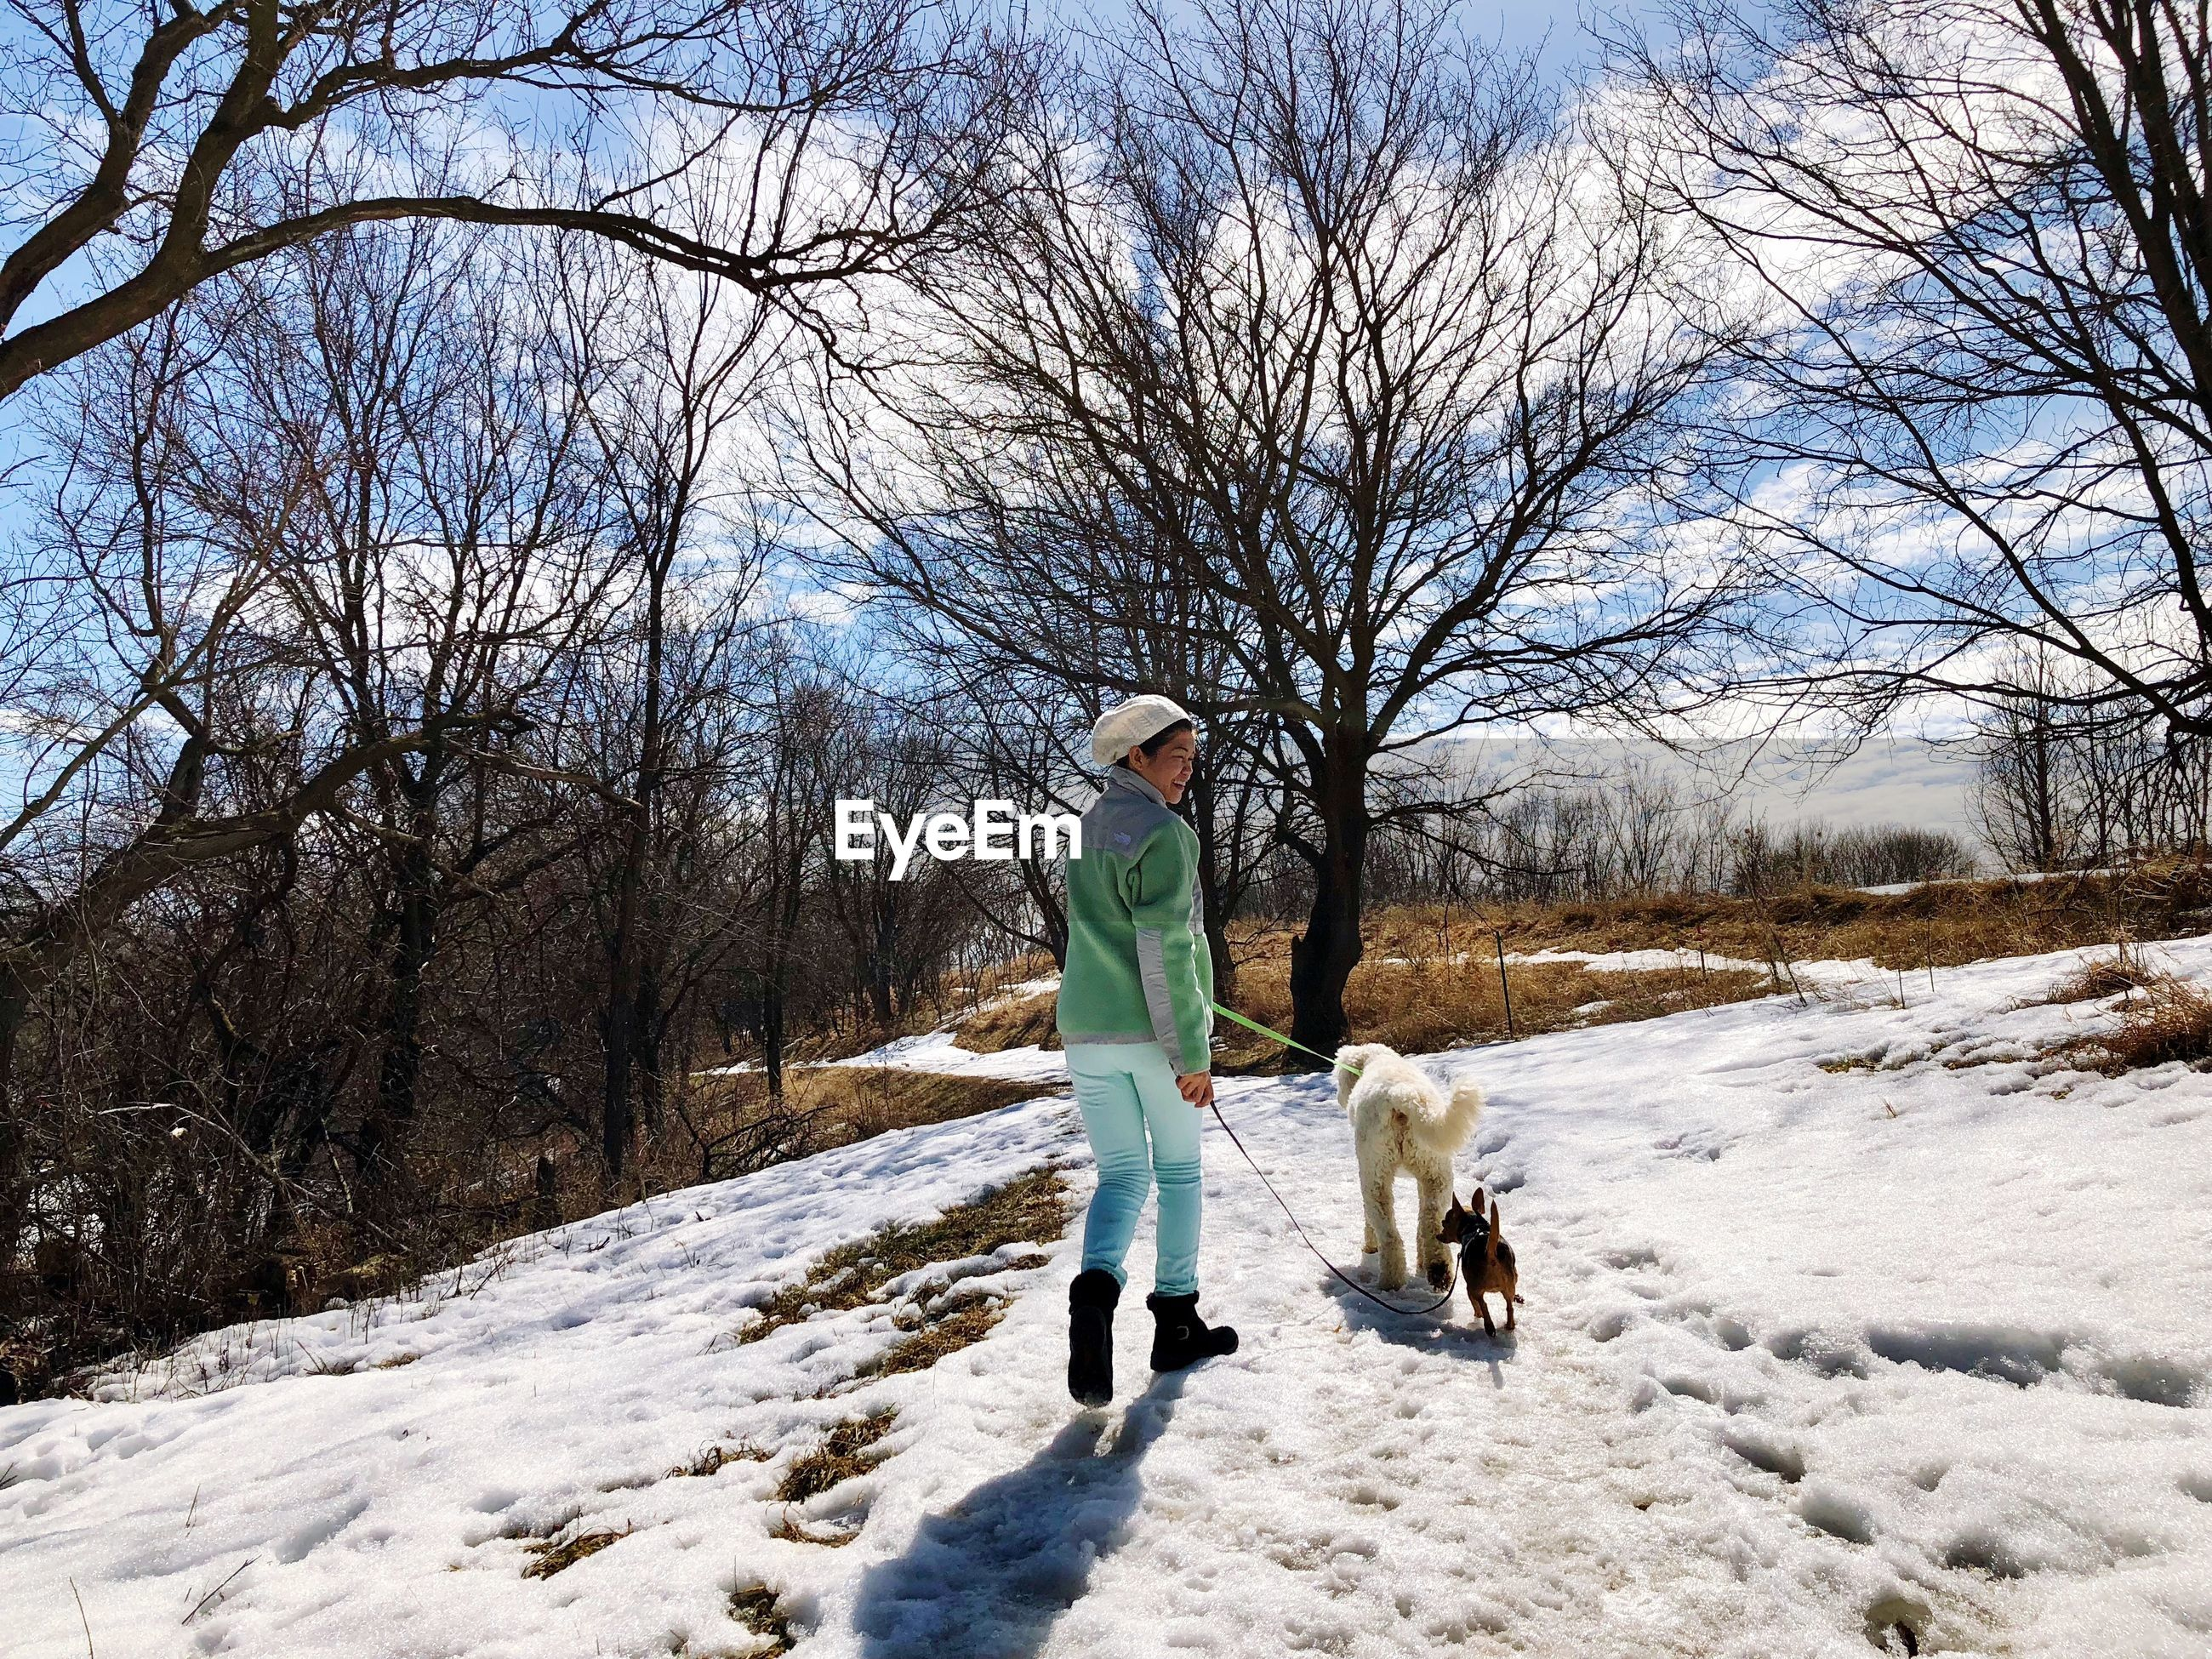 Woman walking with dogs on snow covered field against bare trees